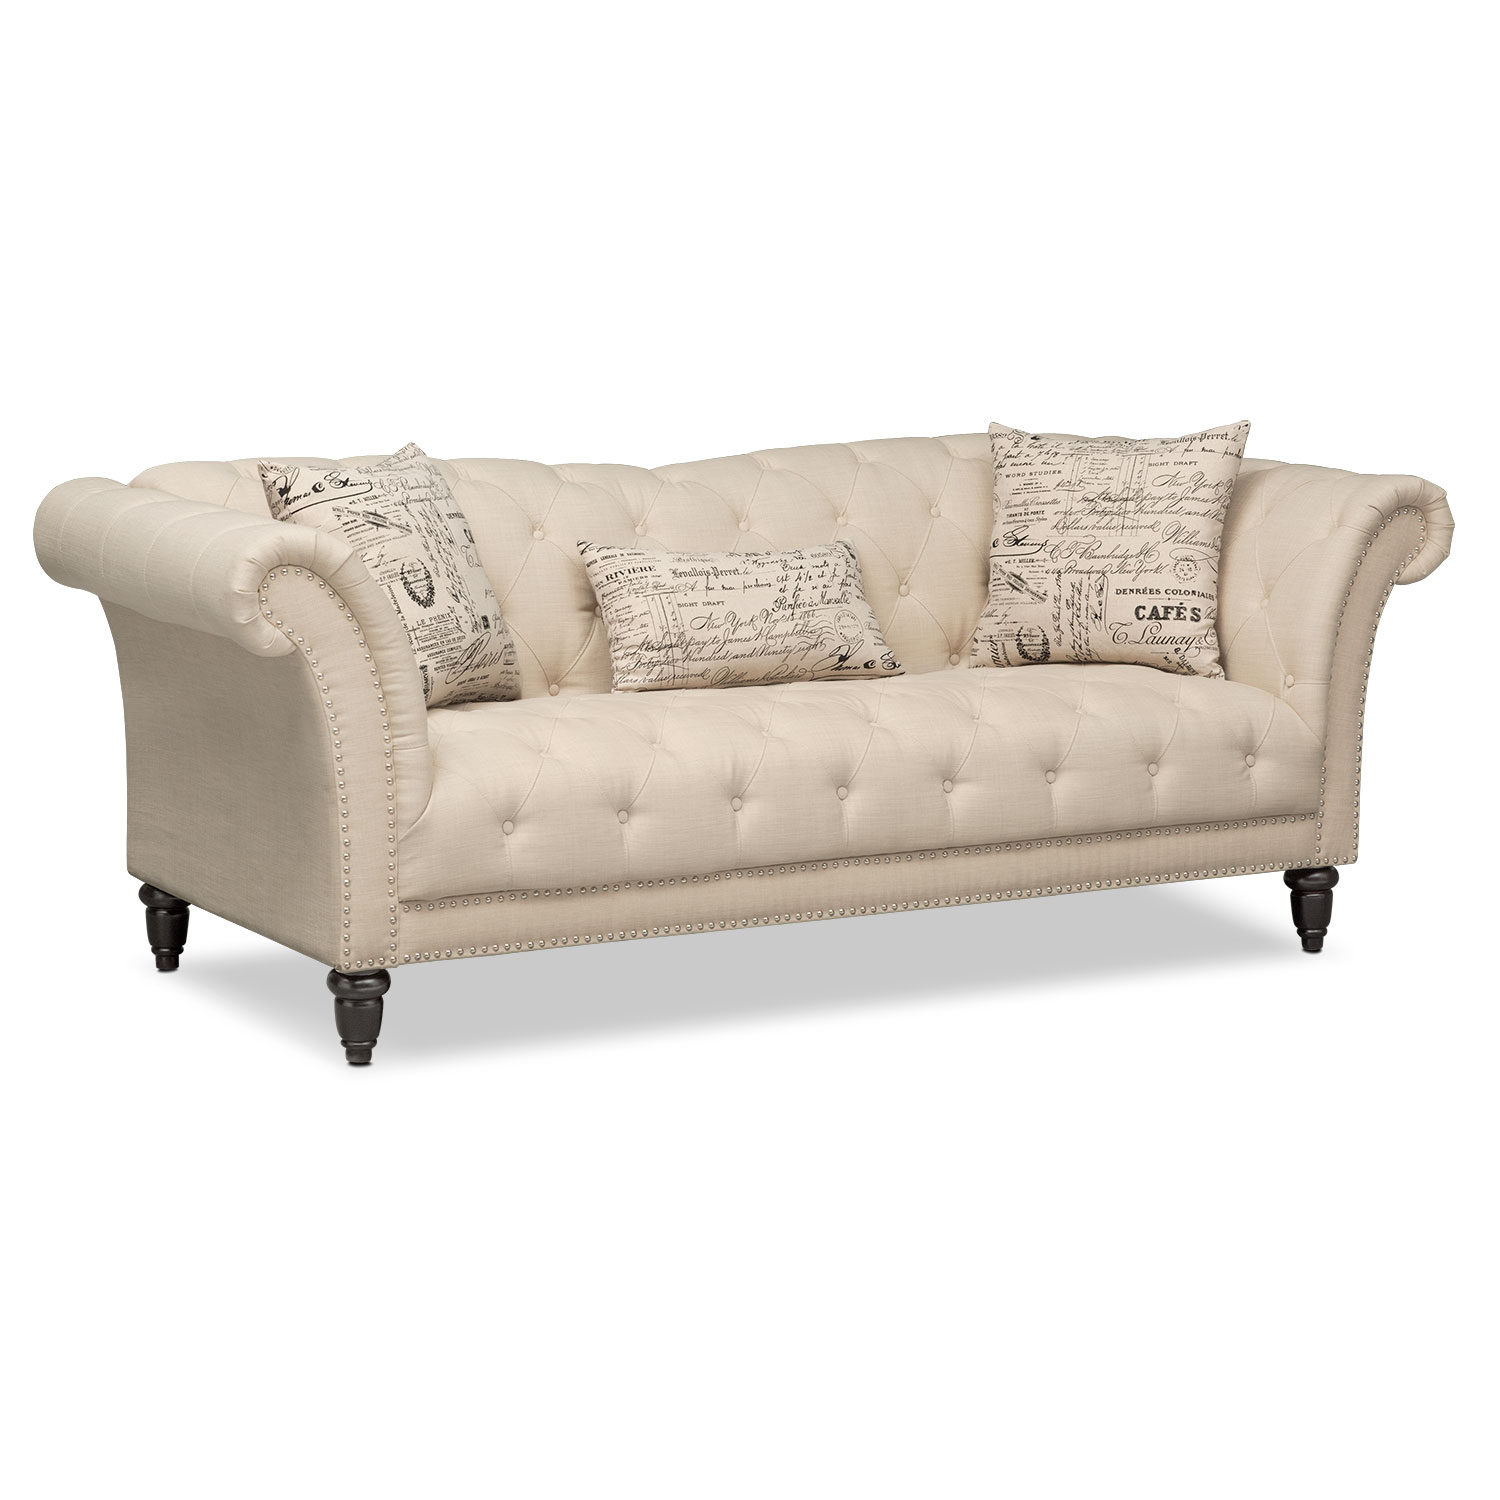 Living Room Furniture - Marisol Sofa - Beige